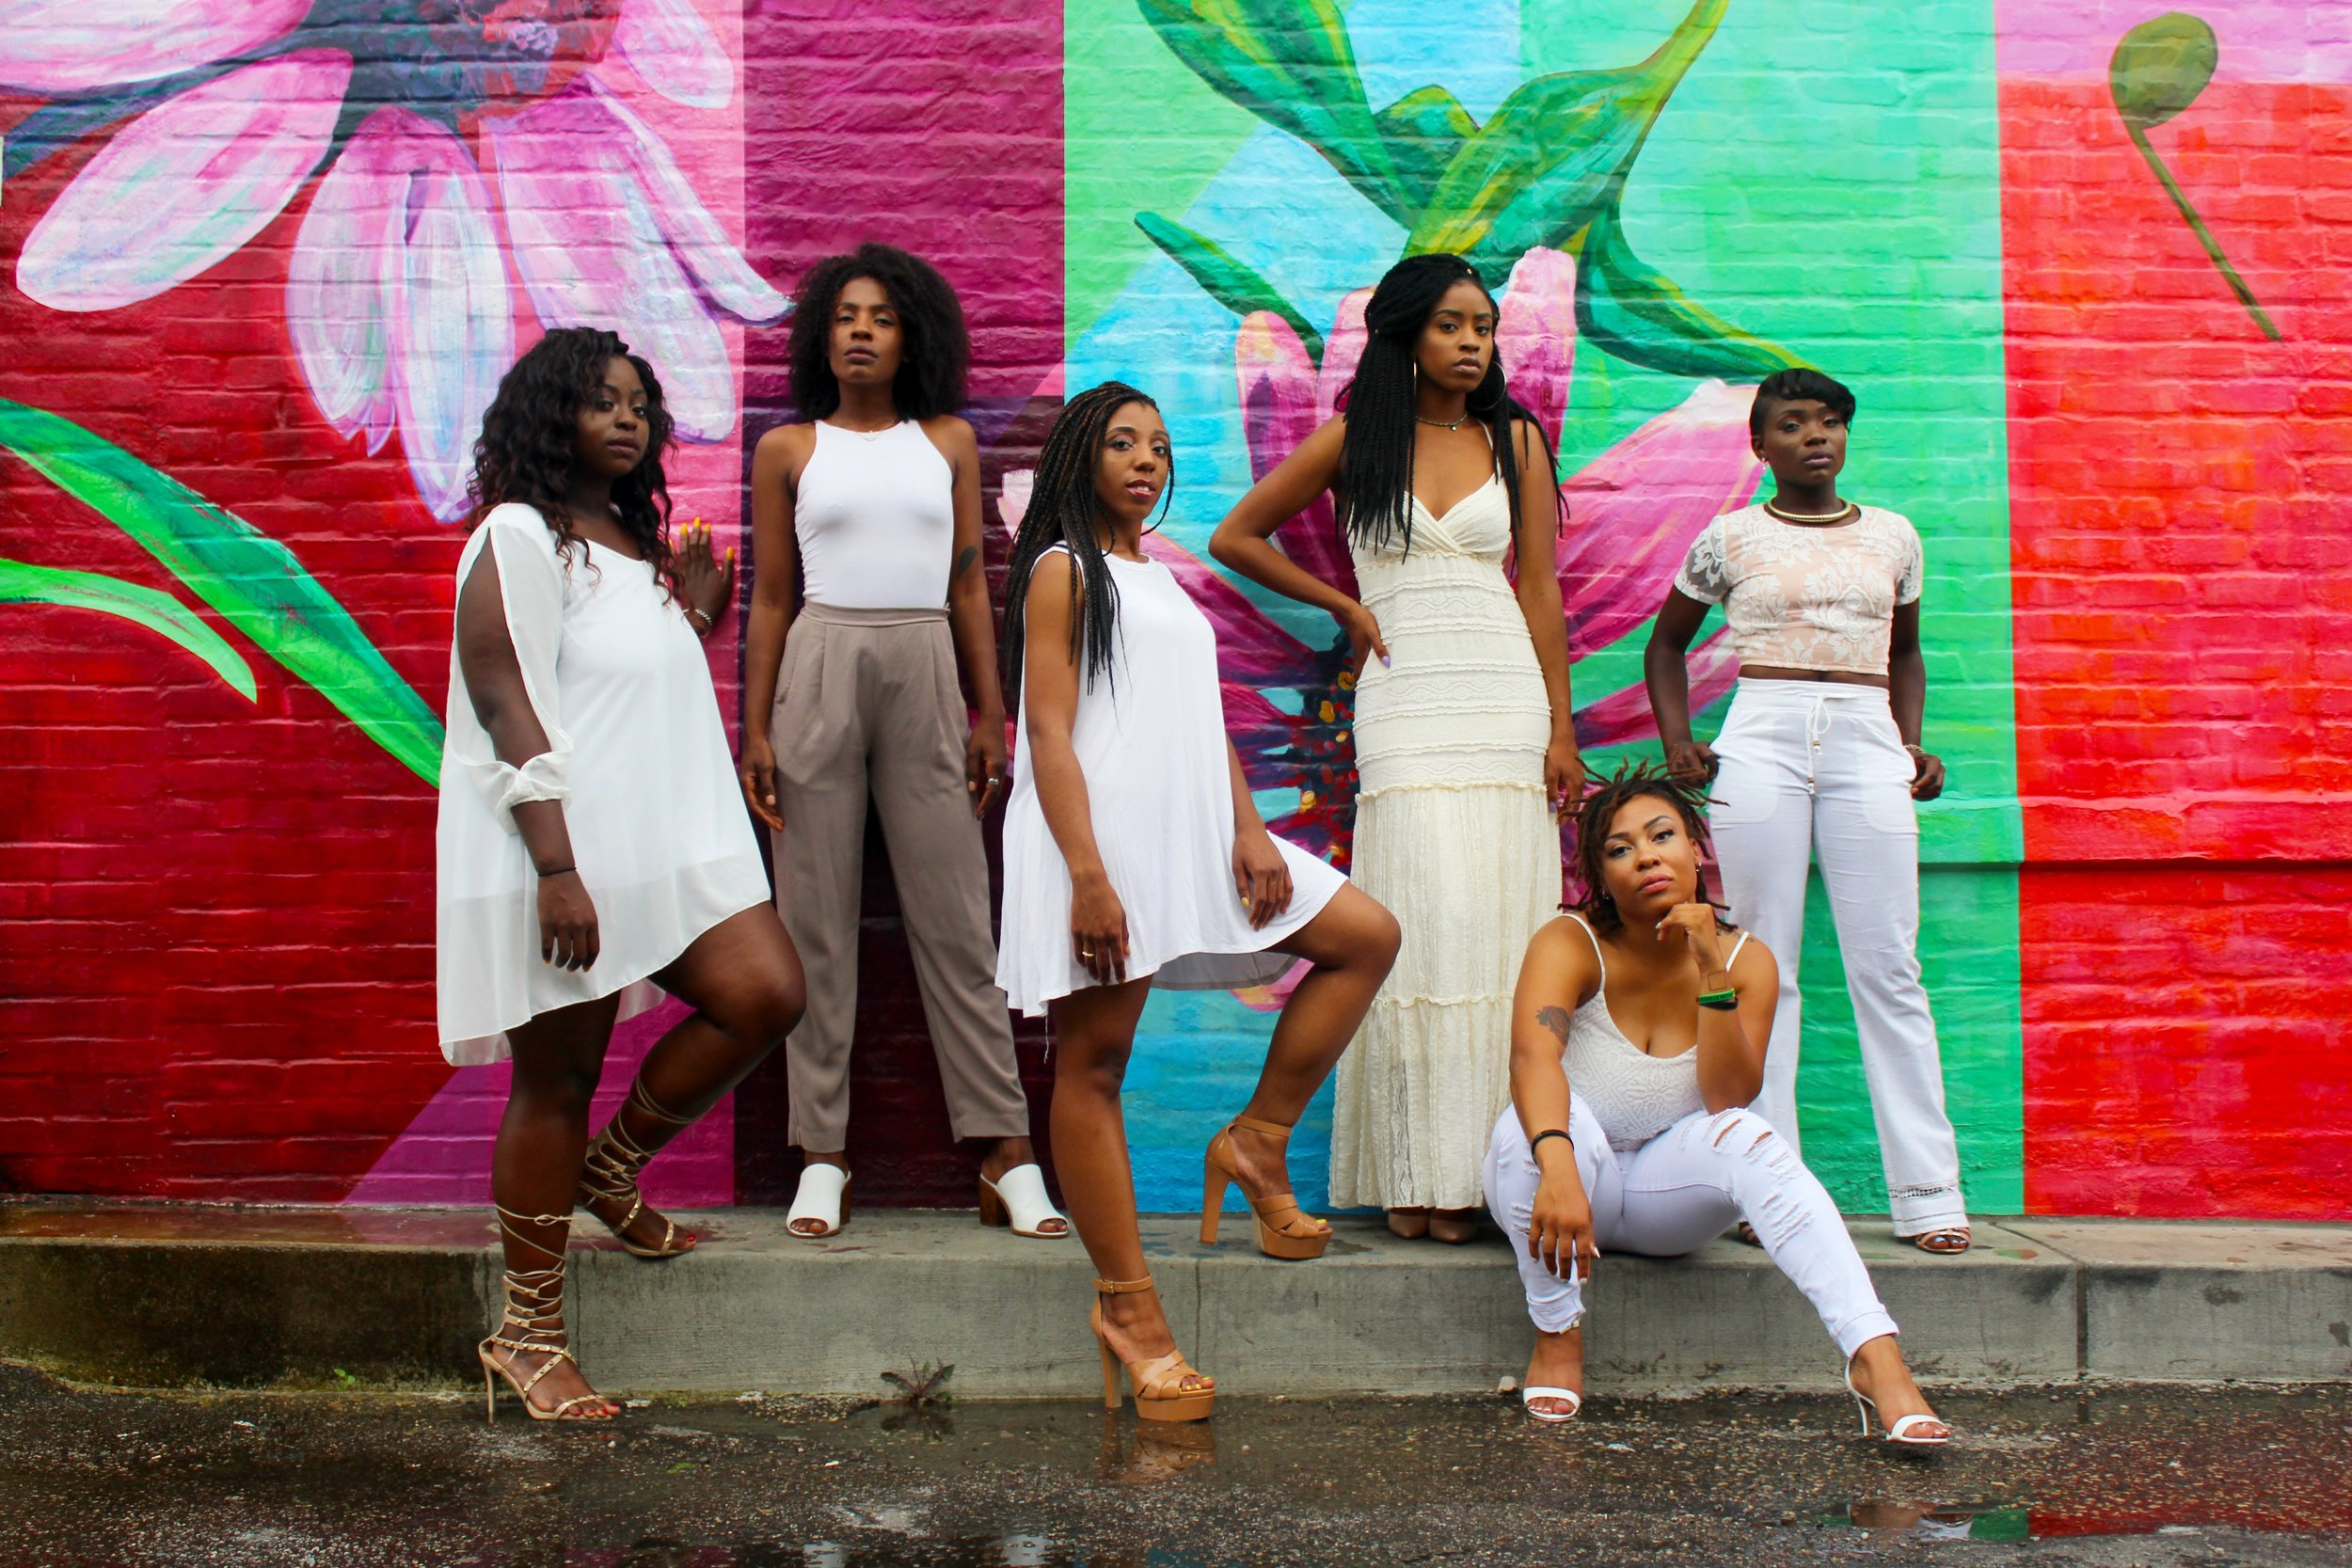 Queen-BEES-Social-Club-MD-DC-VA-DMV-Female-Mentorship-Empowerment-Group-of-Women-Photo-by-Clarke-Sanders-on-Unsplash.jpg